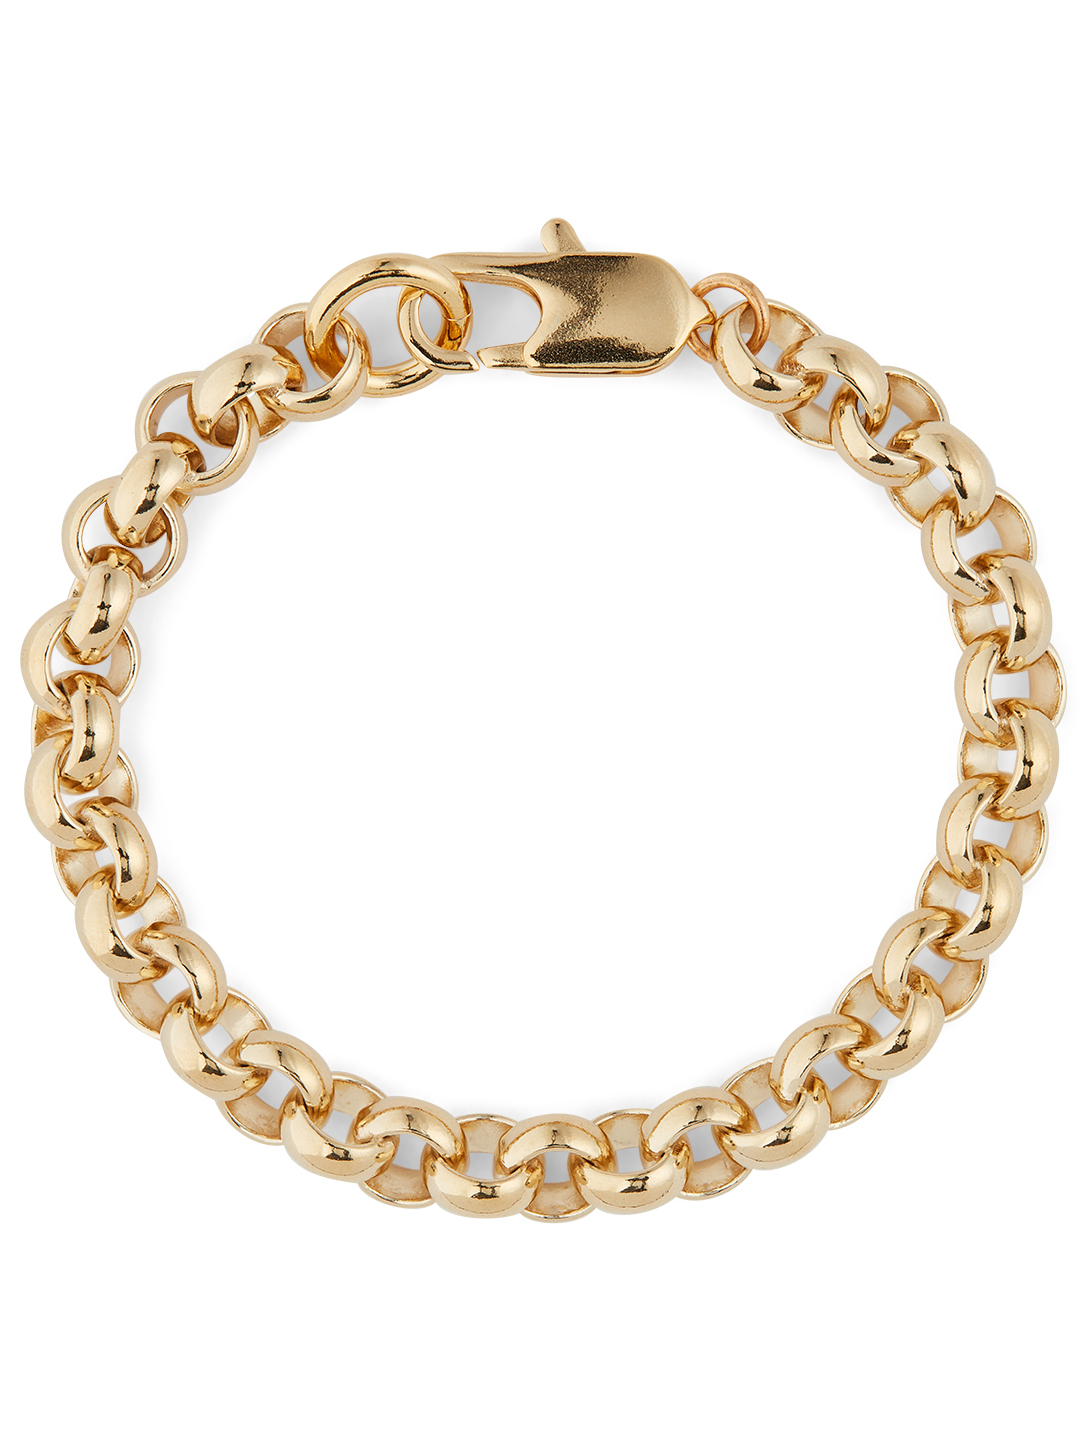 LAURA LOMBARDI 14K Gold Plated Rolo Bracelet Women's Metallic